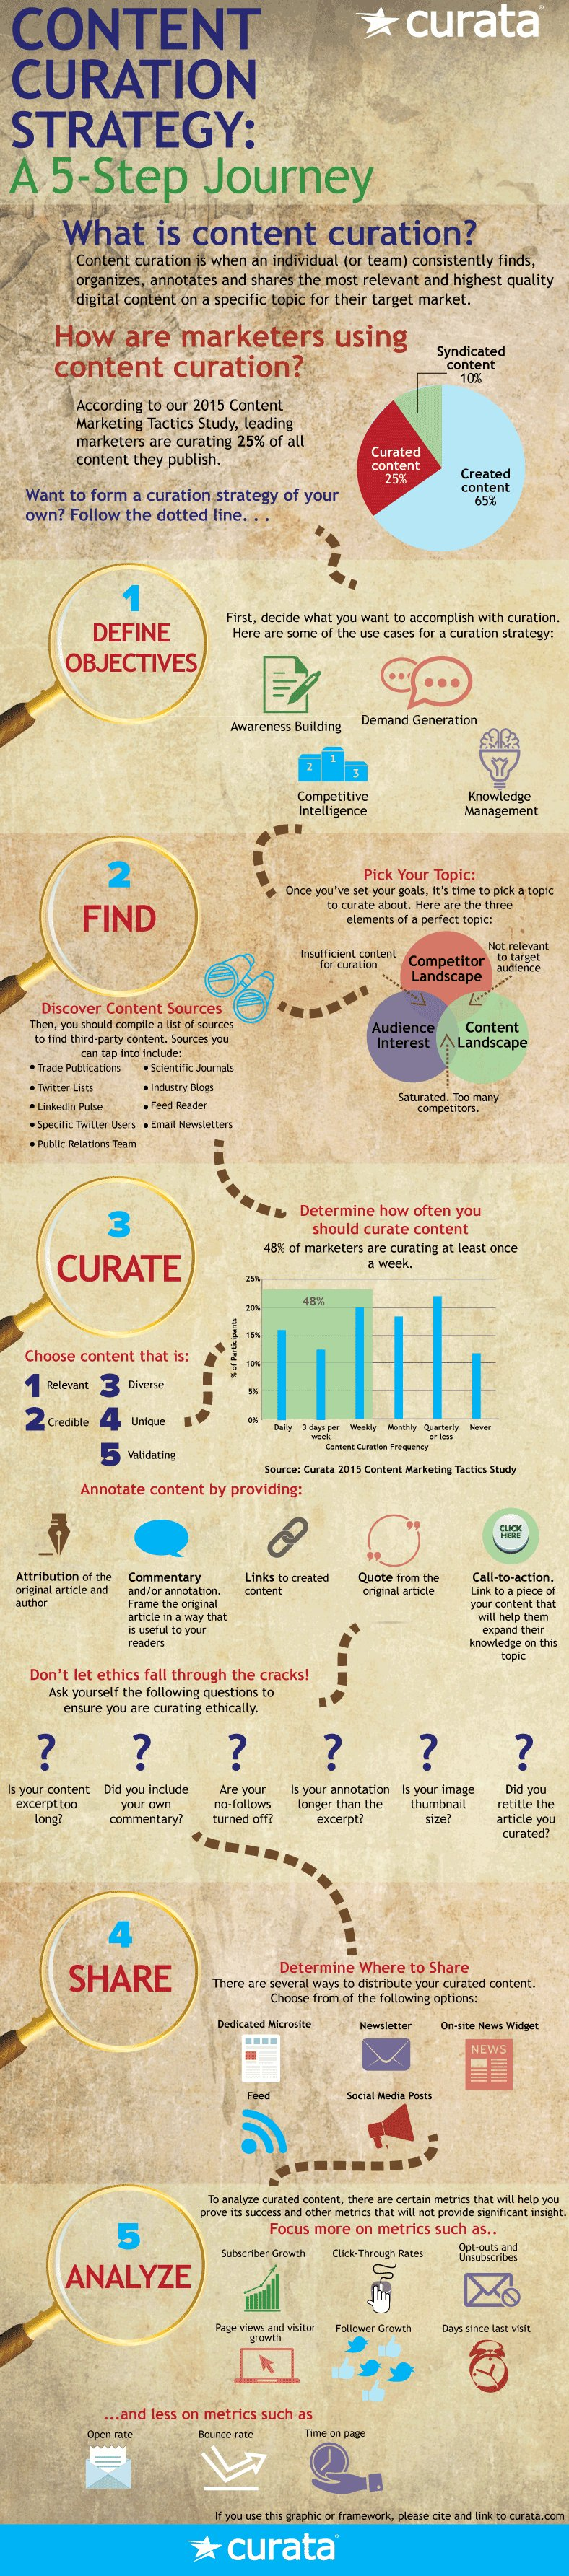 curation-infographic52